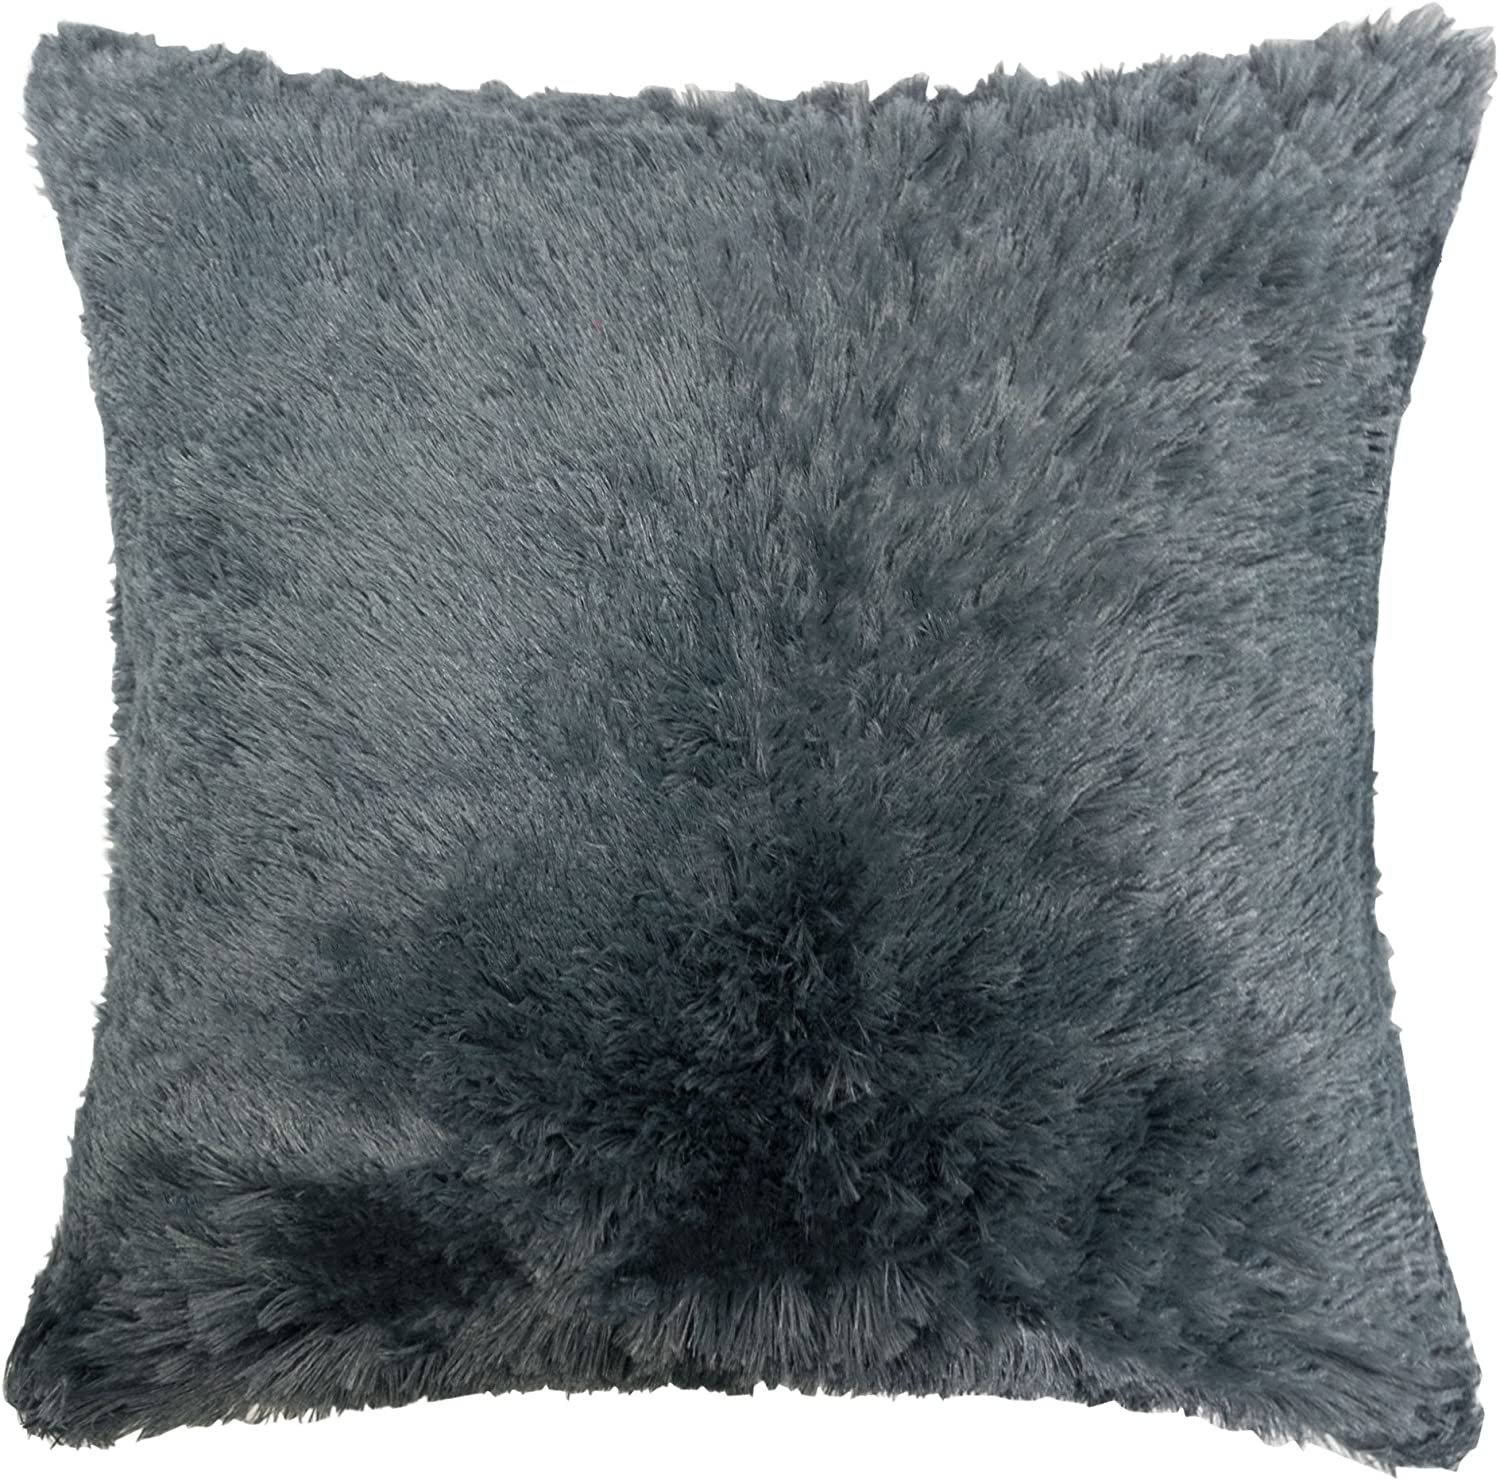 Details about  /Fluffy Plush Cushion Throw Square Pillow Cover Case Home Sofa Car New Decorative